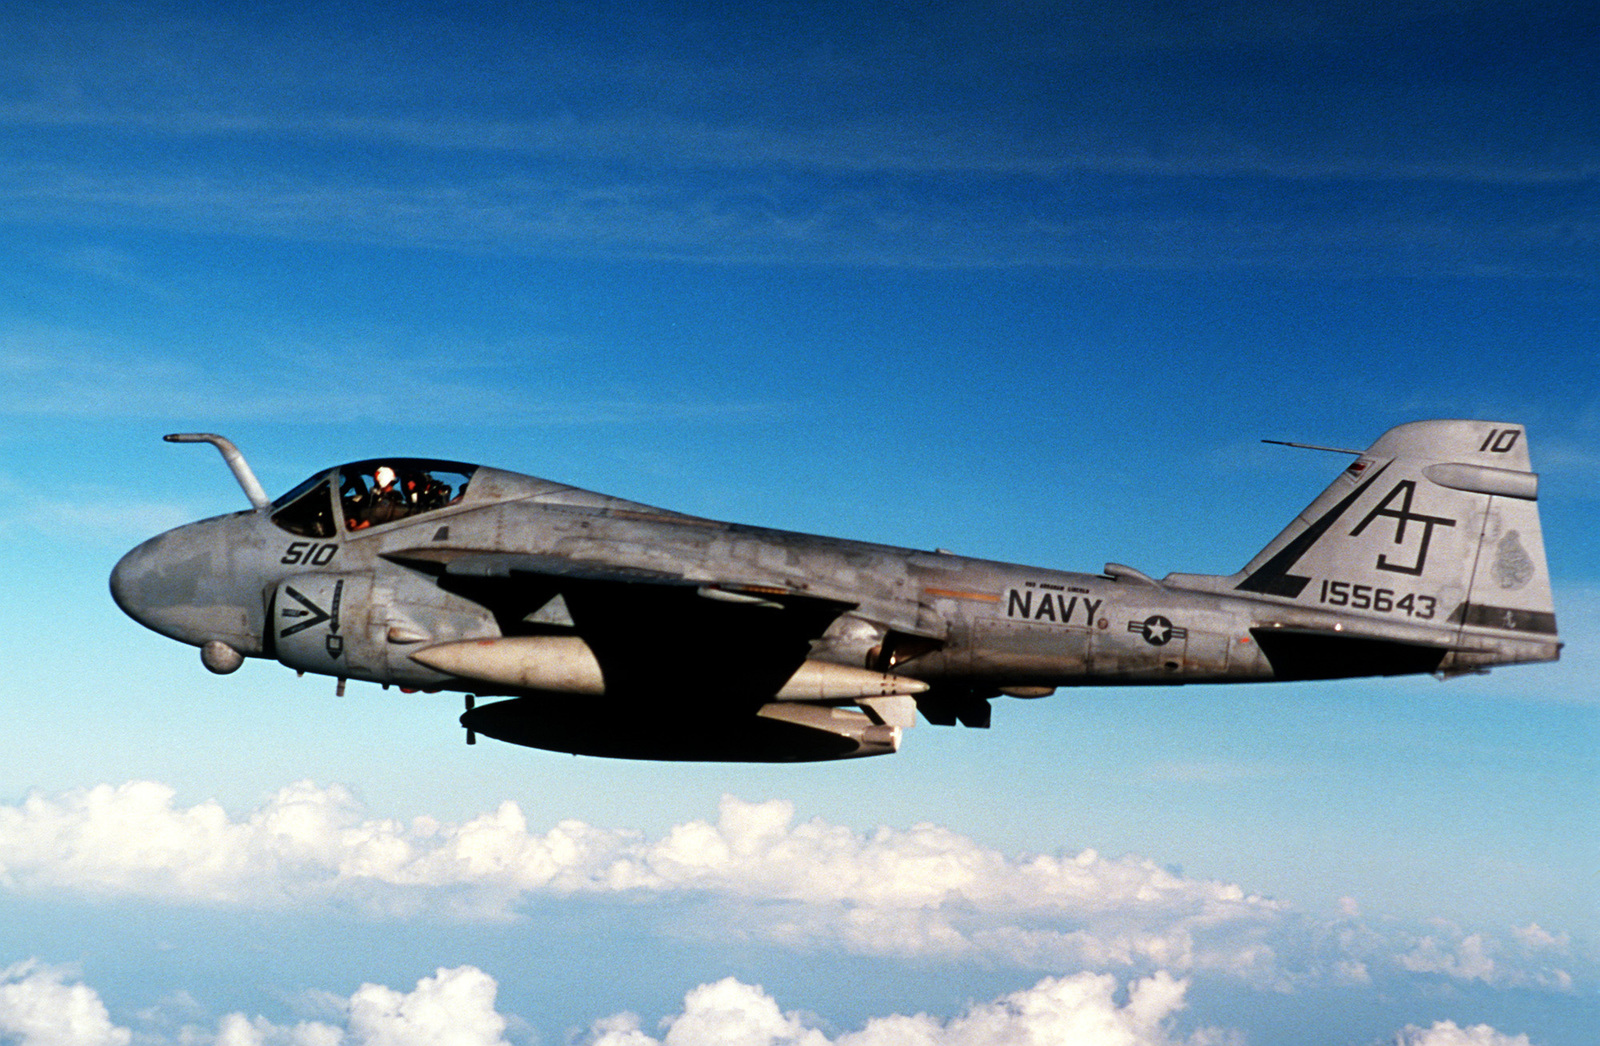 A left side view of an Attack Squadron 65 (VA-65) A-6E Intruder aircraft in-flight. The aircraft is based aboard the nuclear-powered aircraft carrier USS ABRAHAM LINCOLN (CVN-72) during the shakedown's cruise